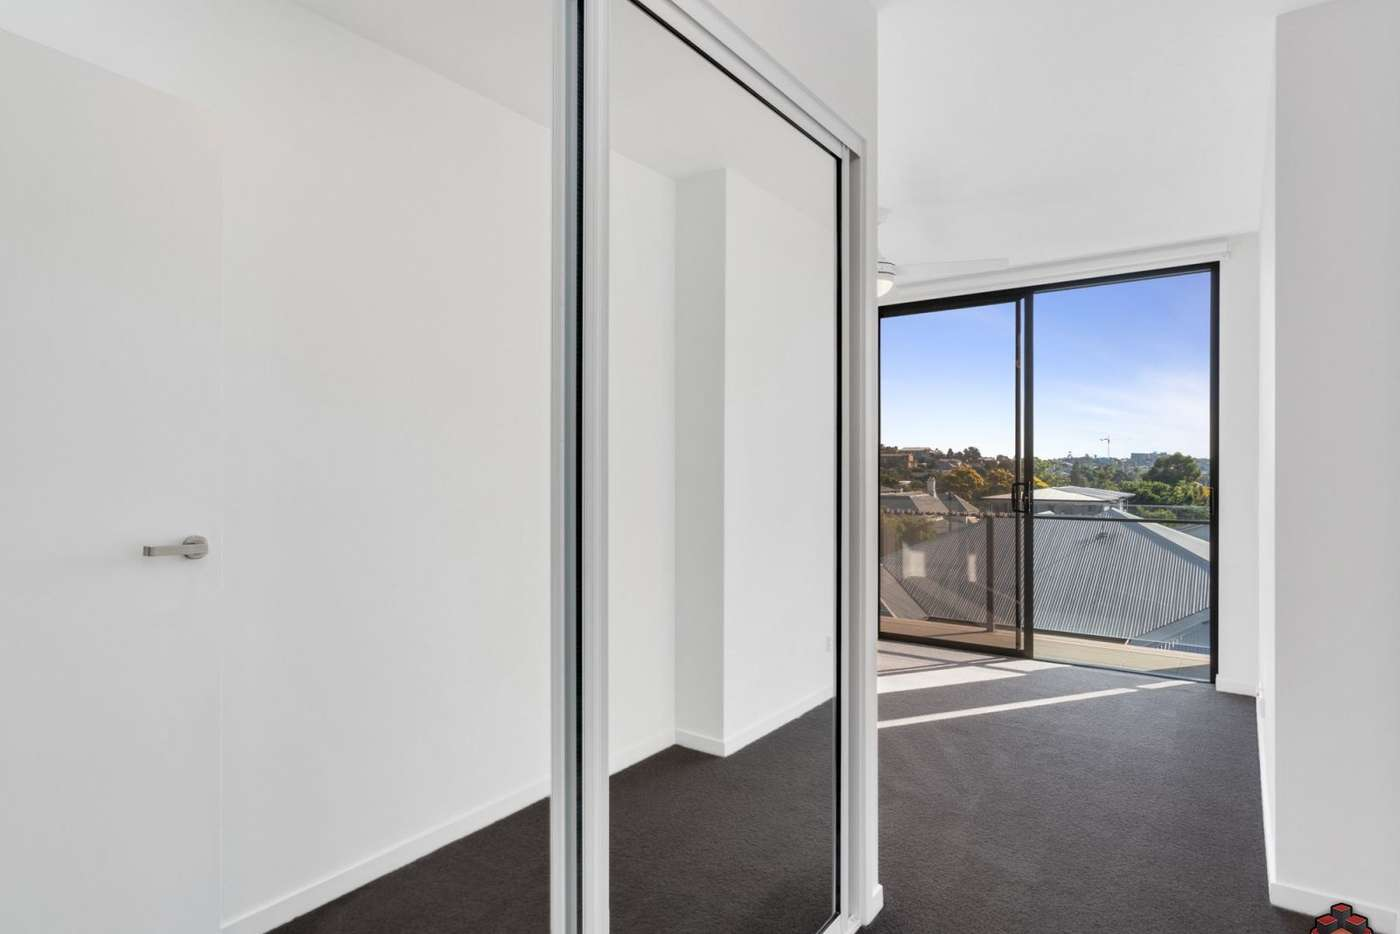 Sixth view of Homely apartment listing, ID:21068007/52 Grantson Street, Windsor QLD 4030